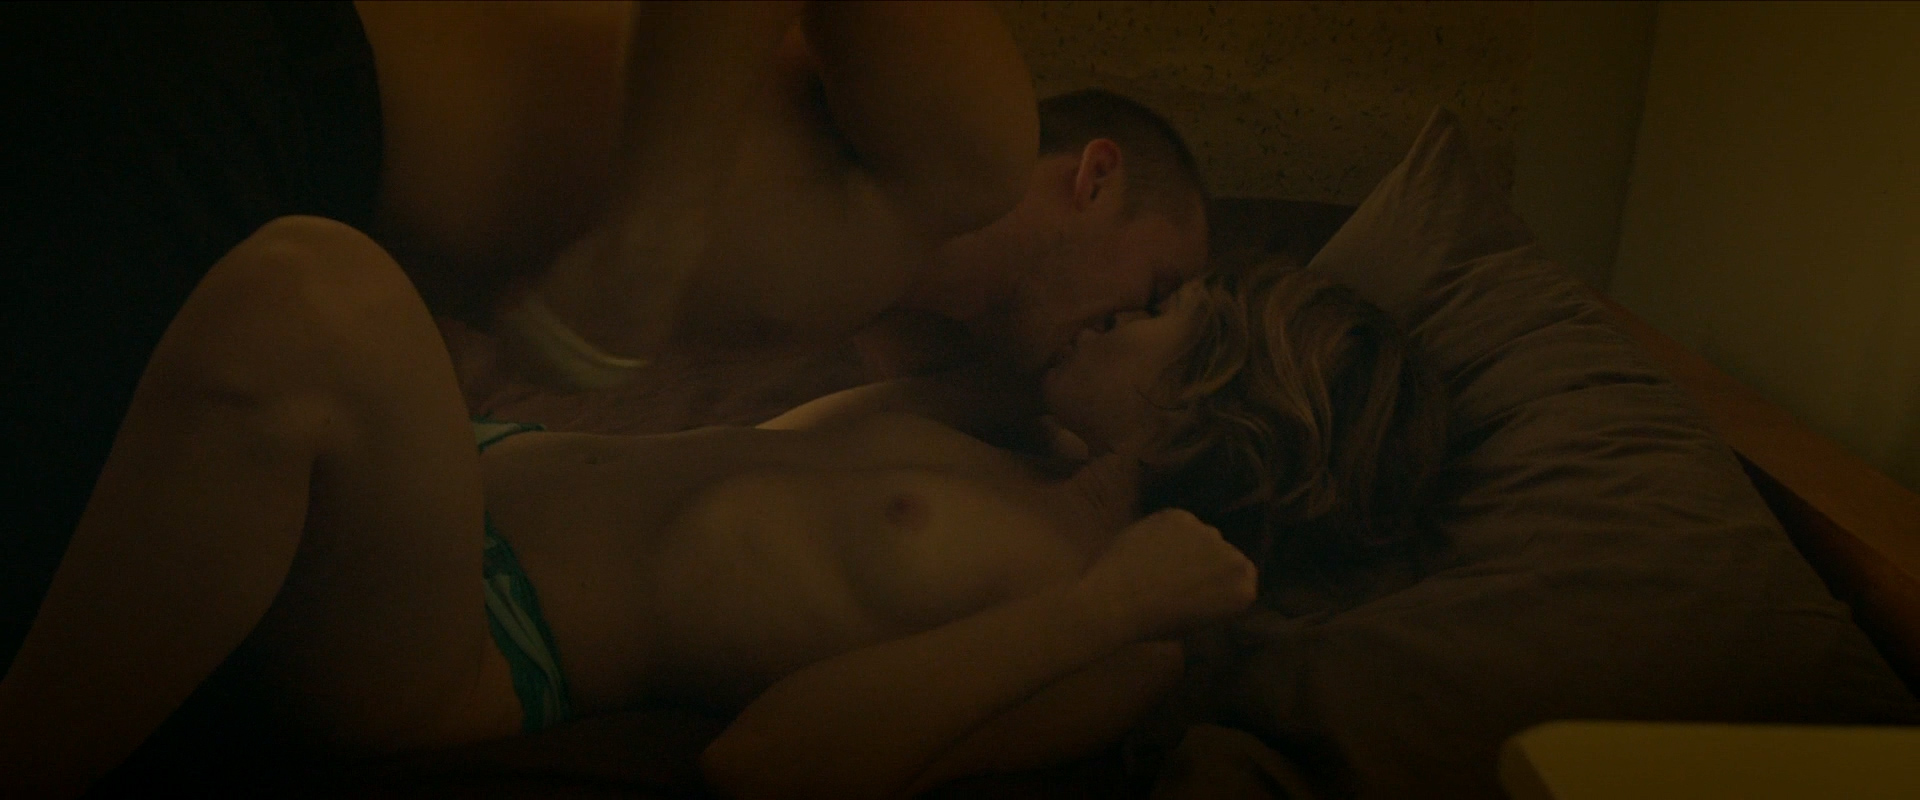 Nadia Hilker nude and sex and Augie Duke nude topless - Spring (2014) BluRay hd720/1080p (13)